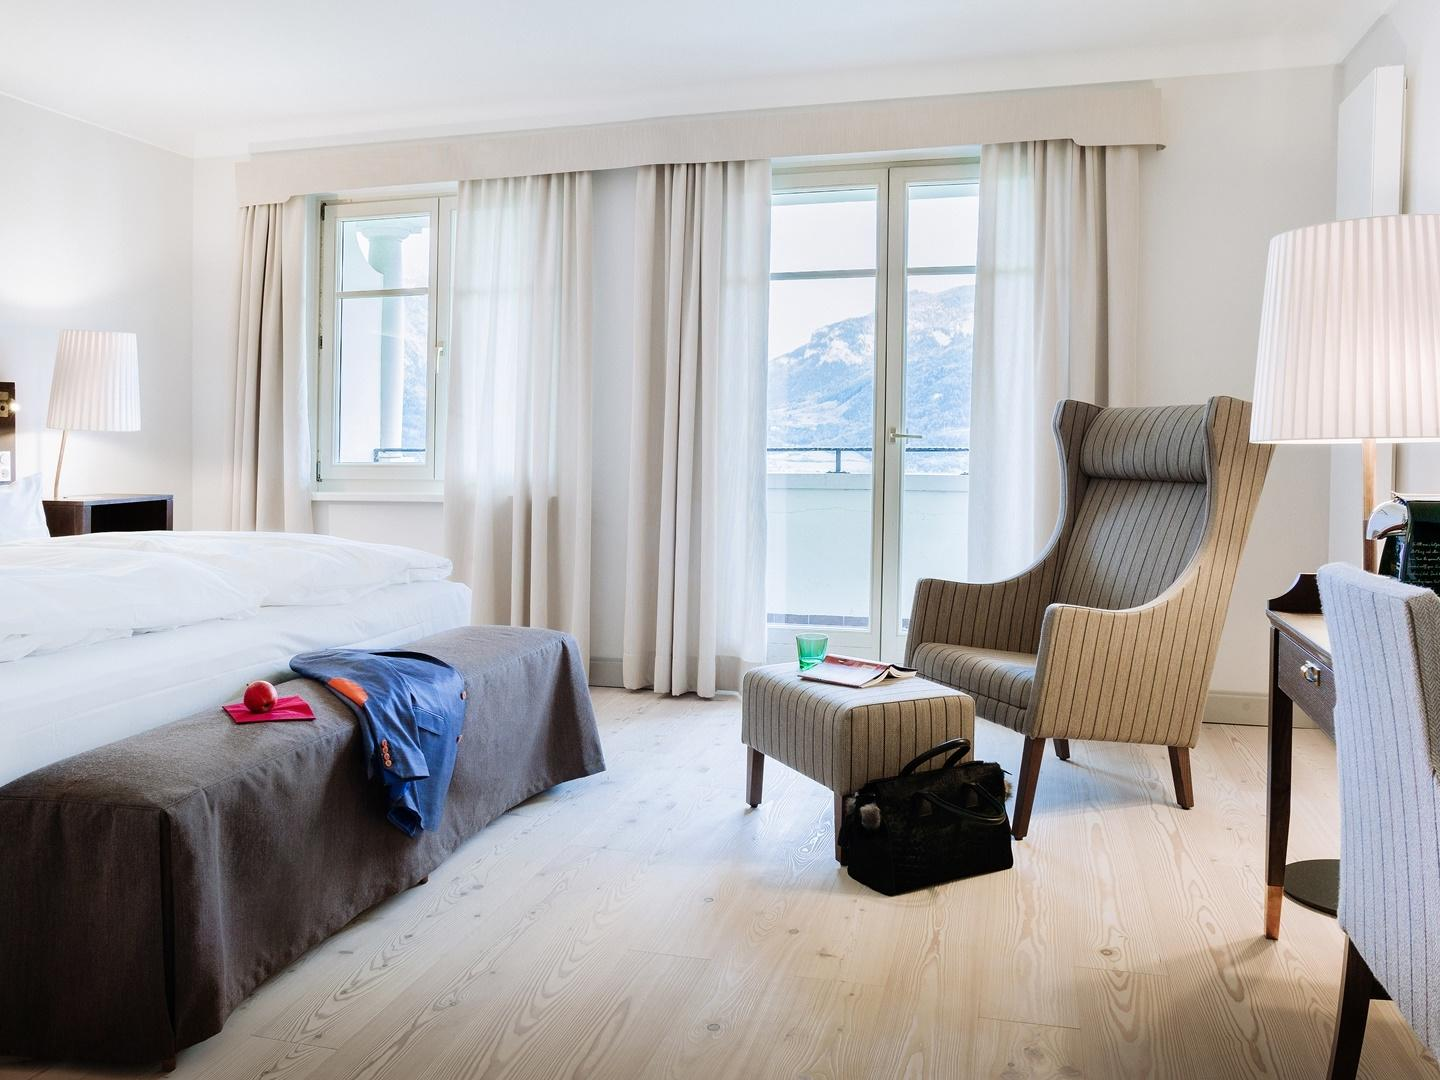 Deluxe Double Room with Balcony at Romantik Hotel Schloss Pichlarn